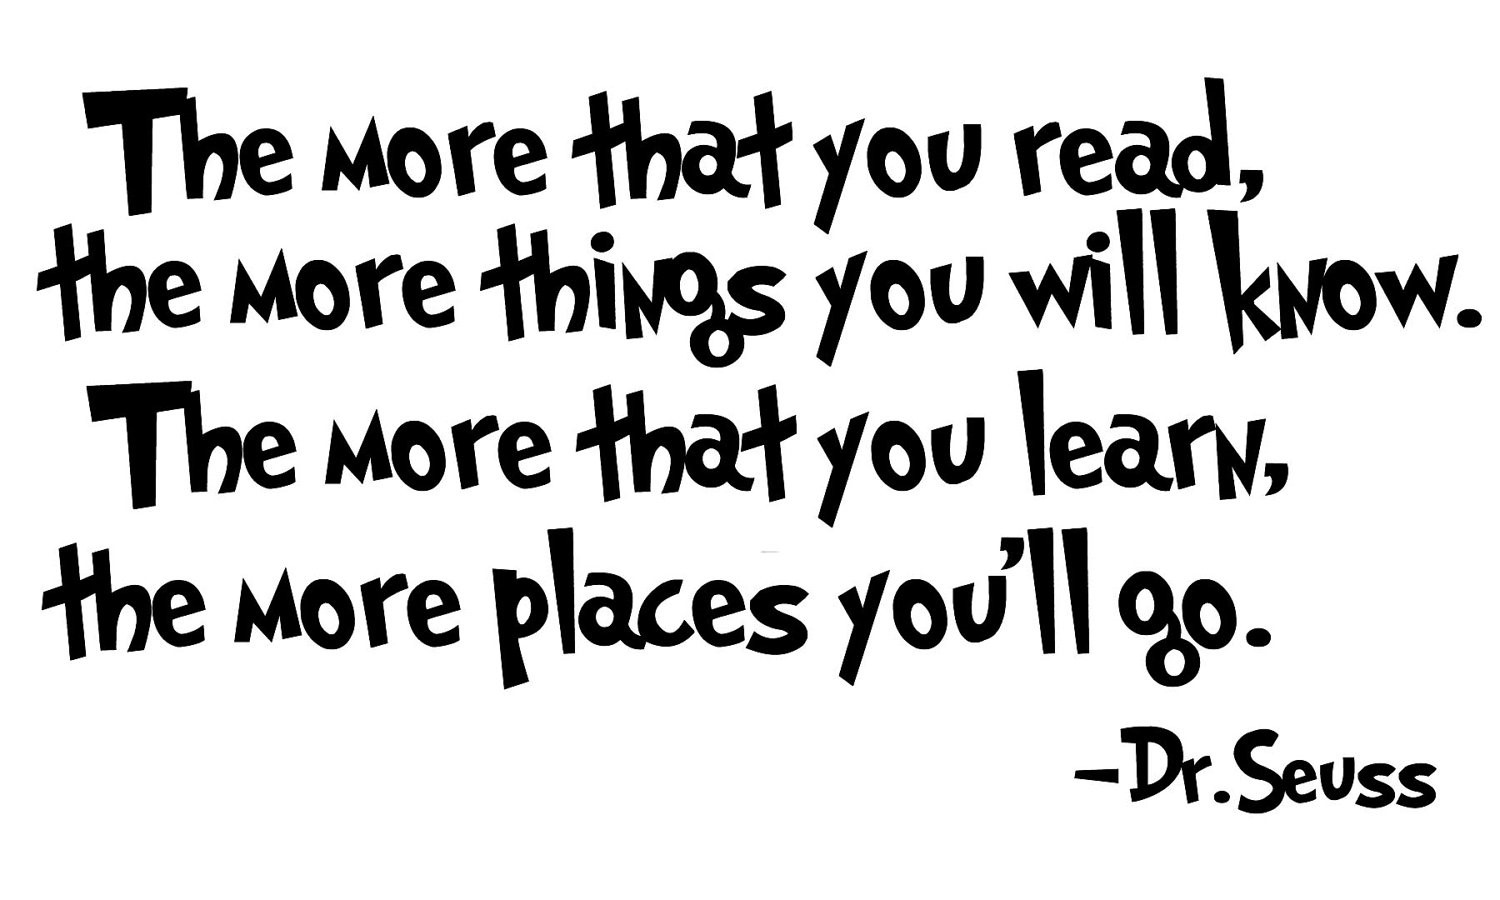 The more that you learn, the more places you'll go. - Dr. Seuss